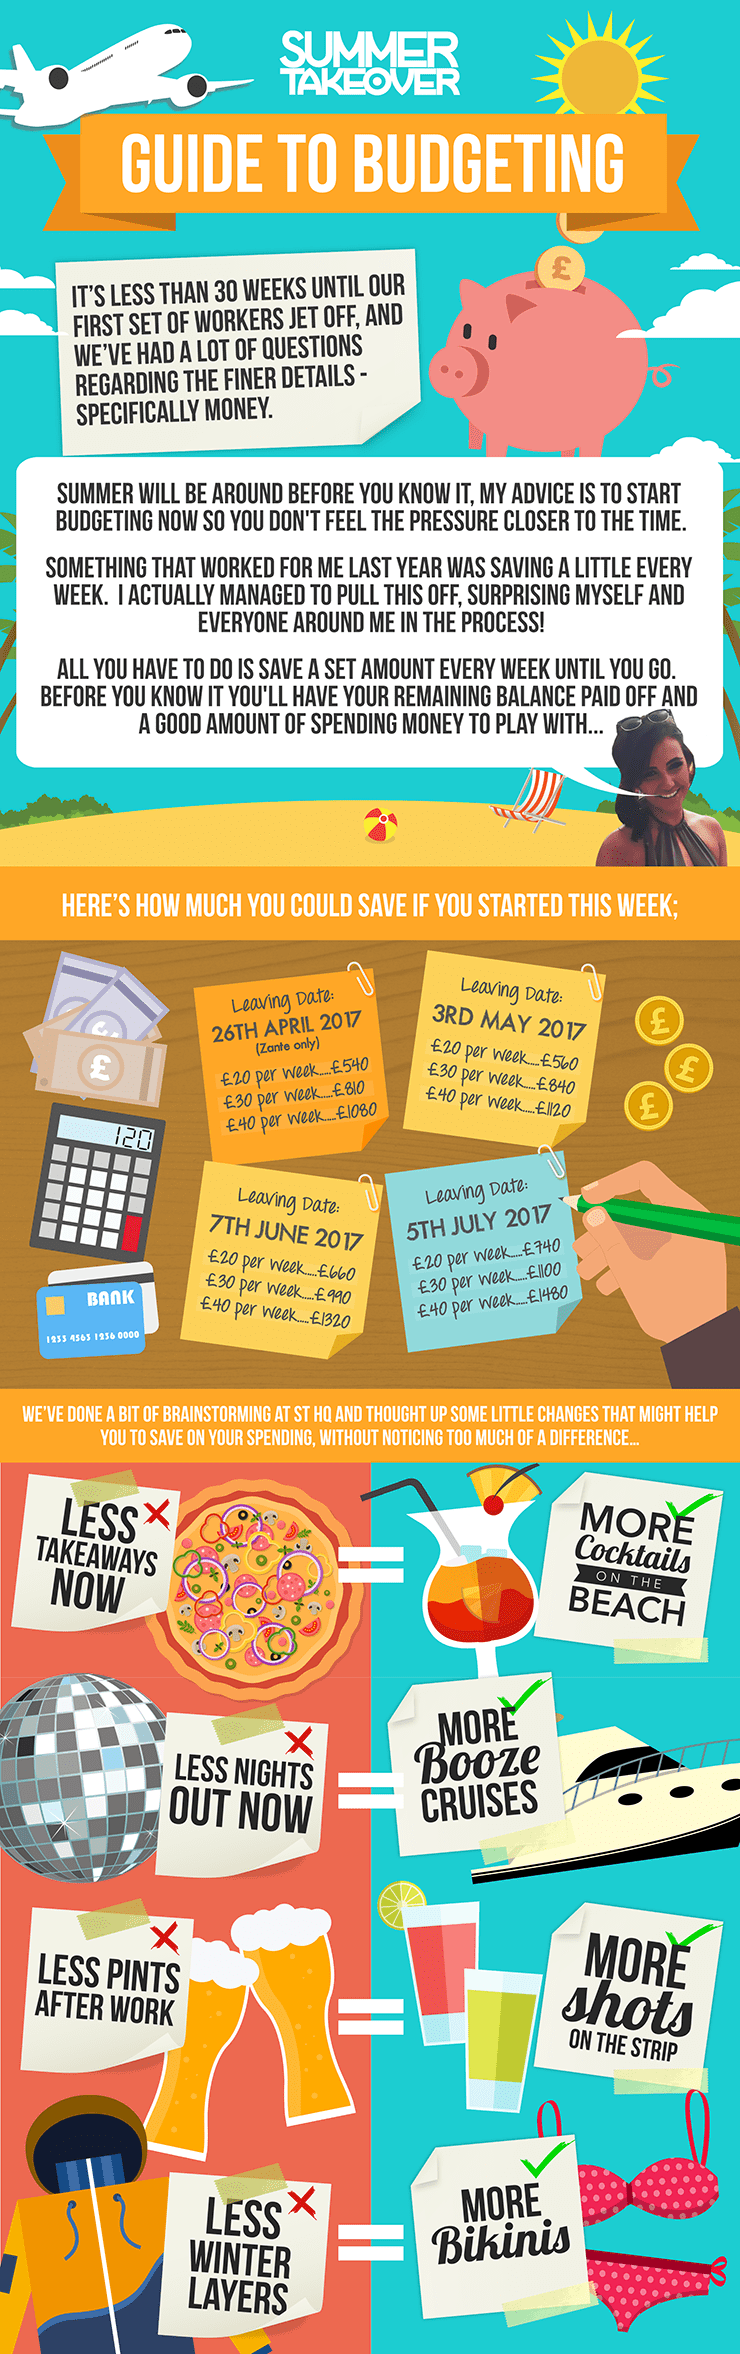 summer_takeover_budgeting_infographic